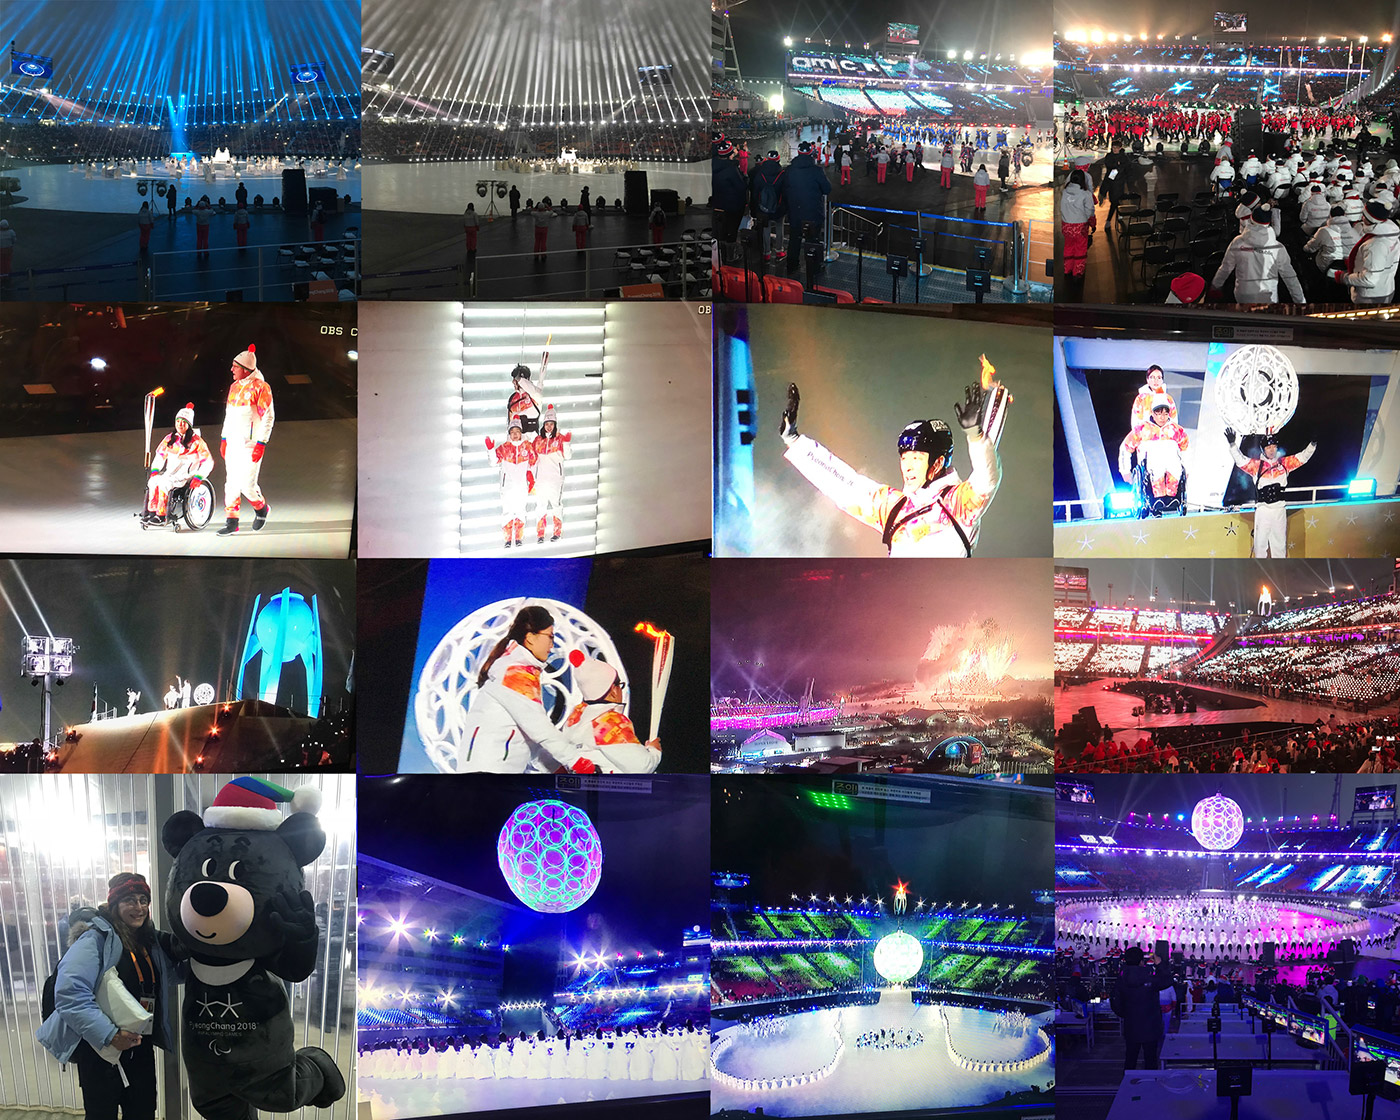 PyeongChang Paralympics 2018 Photo Montage 3 - Opening Ceremony